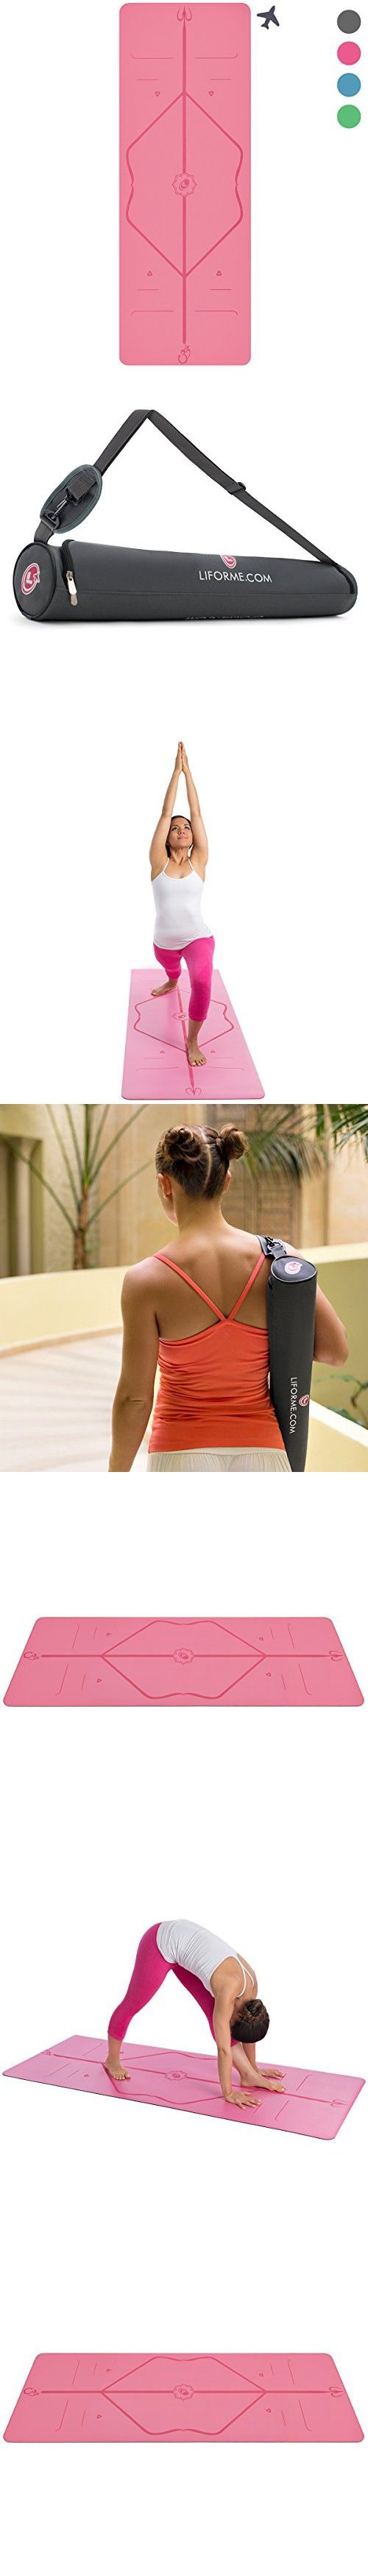 Liforme Travel Yoga Mat - World's Best Eco-Friendly, Light, Portable Non Slip Yoga Mat With Original Alignment Marker System. Available in Grey, Pink, Blue and Green … (Pink)